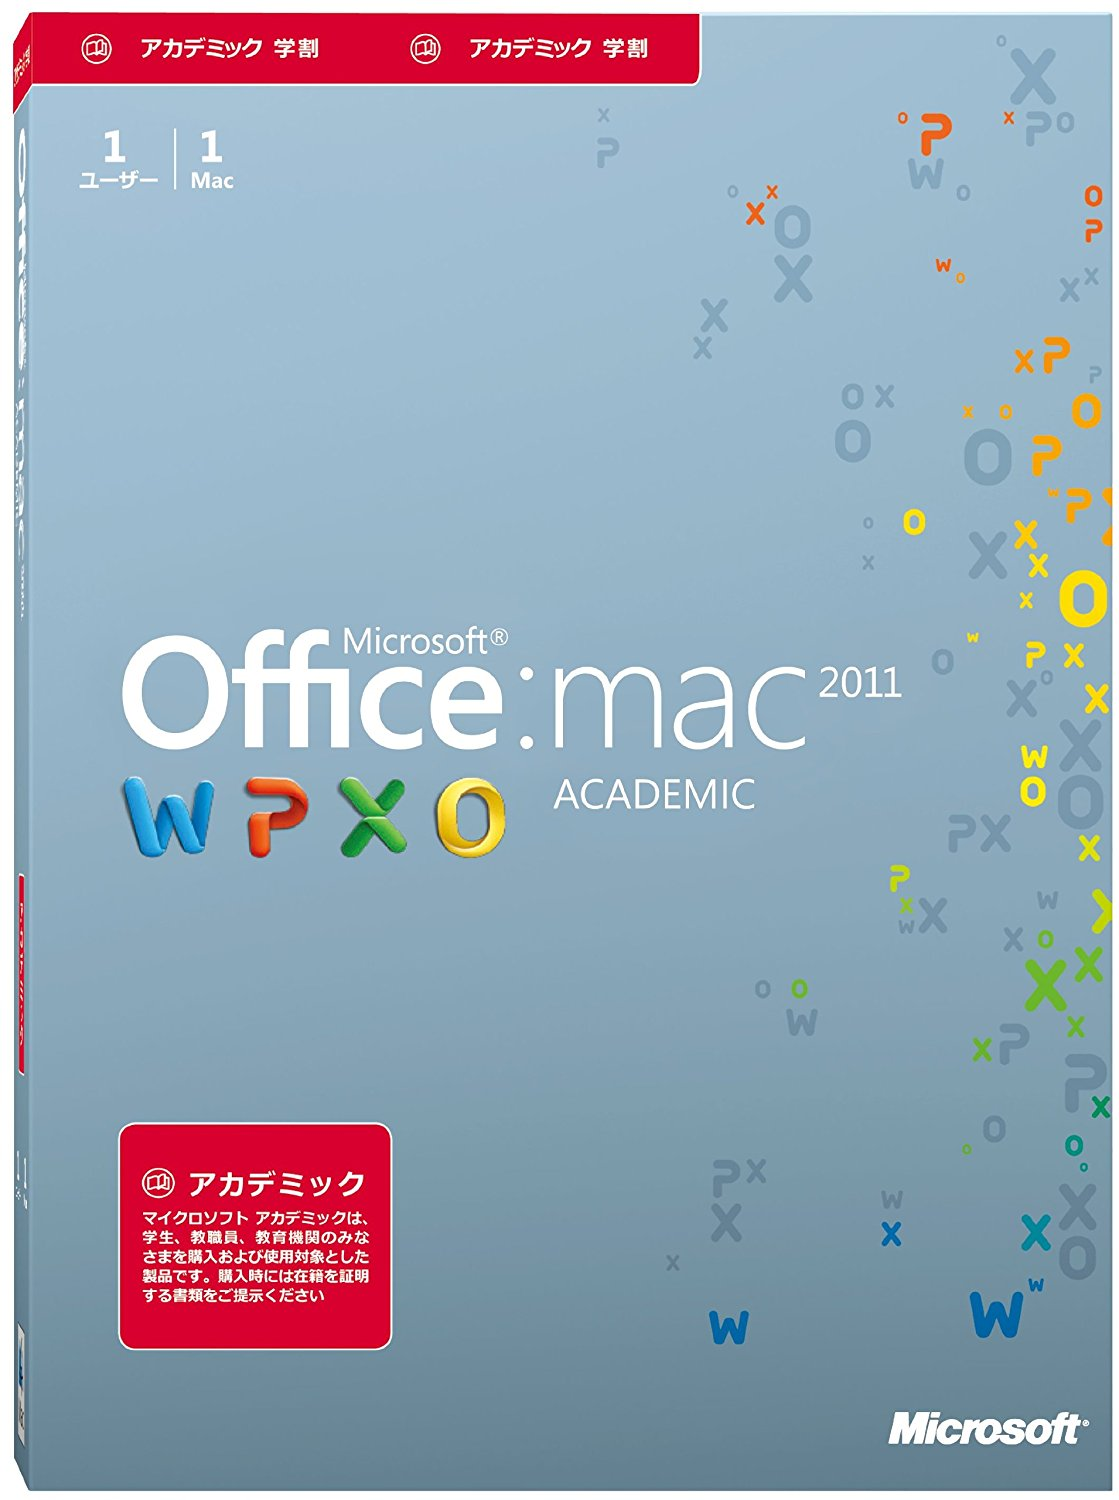 Microsoft Office for Mac Academic 2011 [パッケージ]アカデミック